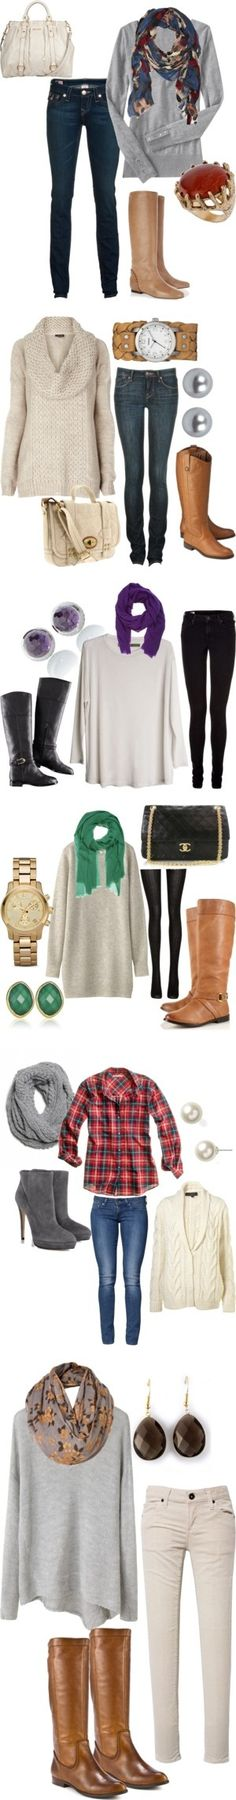 The Todd & Erin Favorite Five Daily is out: Cowgirl Fall Style–Outfit Ideas